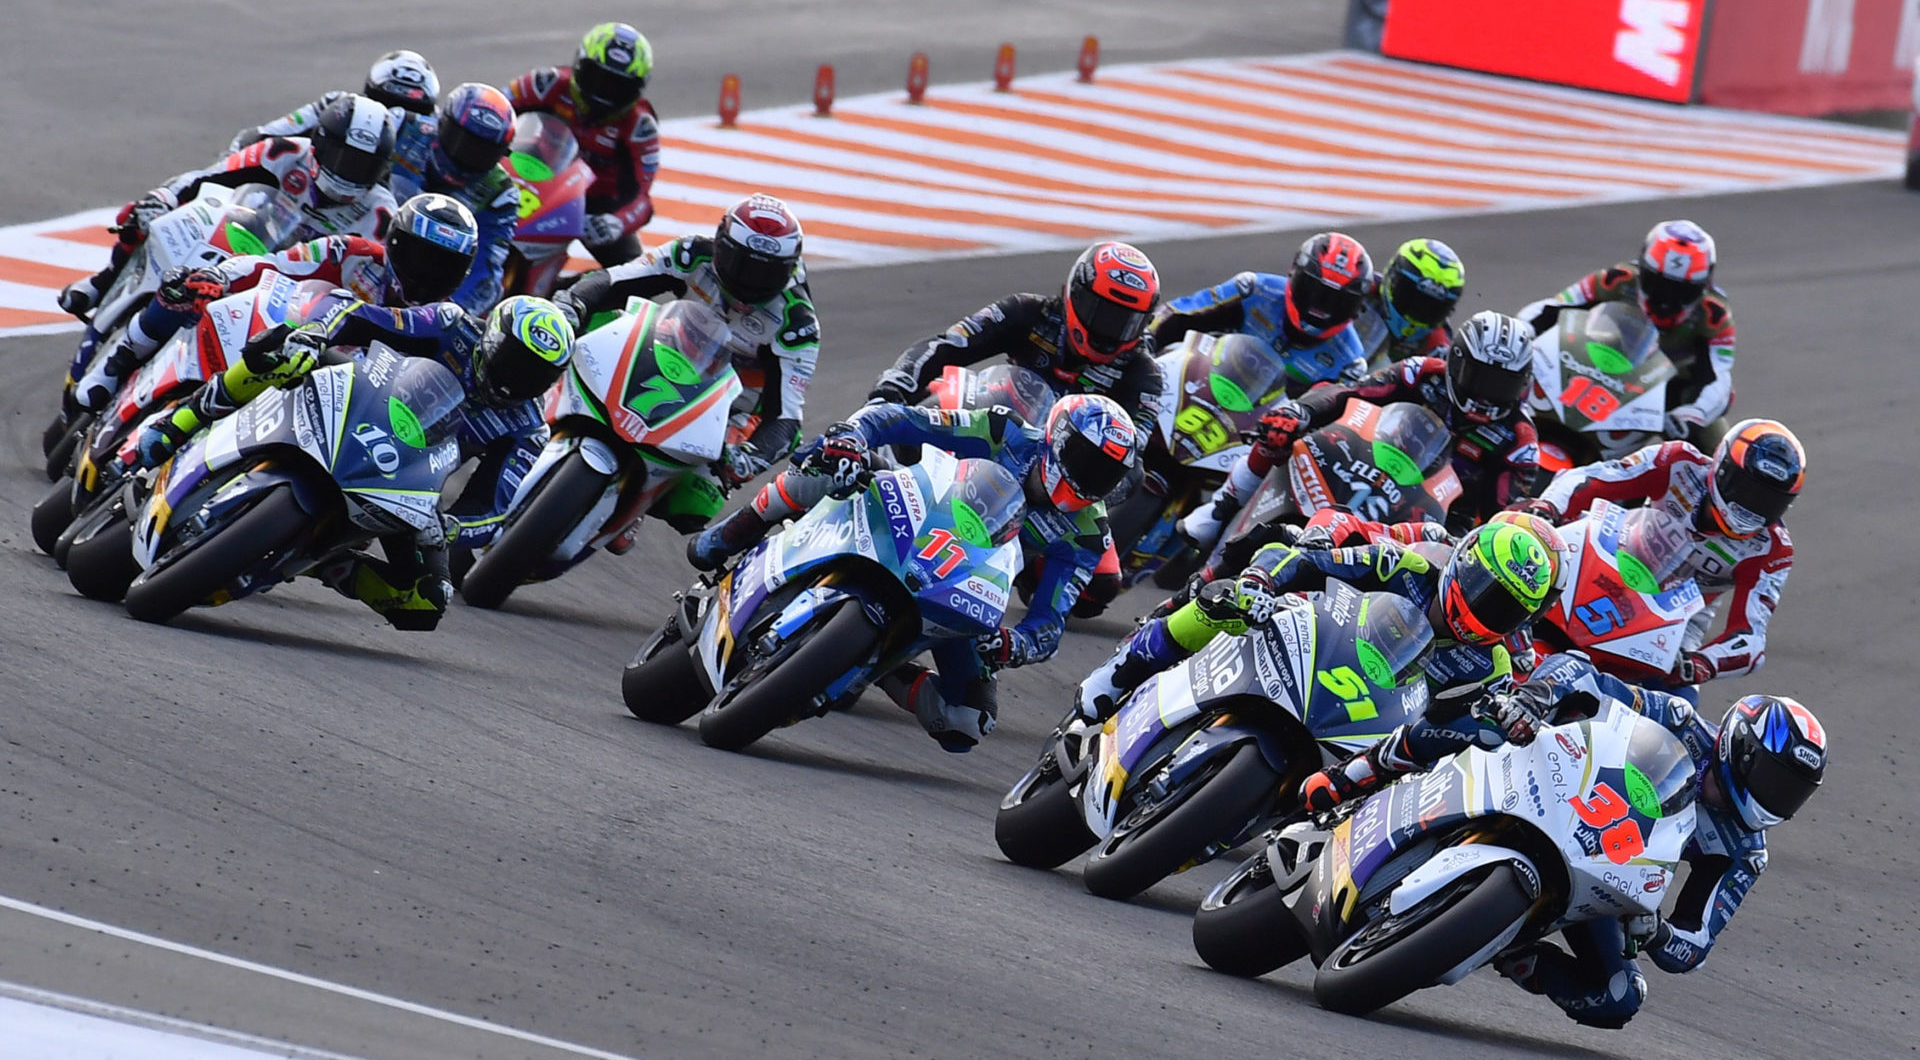 Action from the 2019 MotoE World Cup finale at Valencia. Photo courtesy of Dorna.